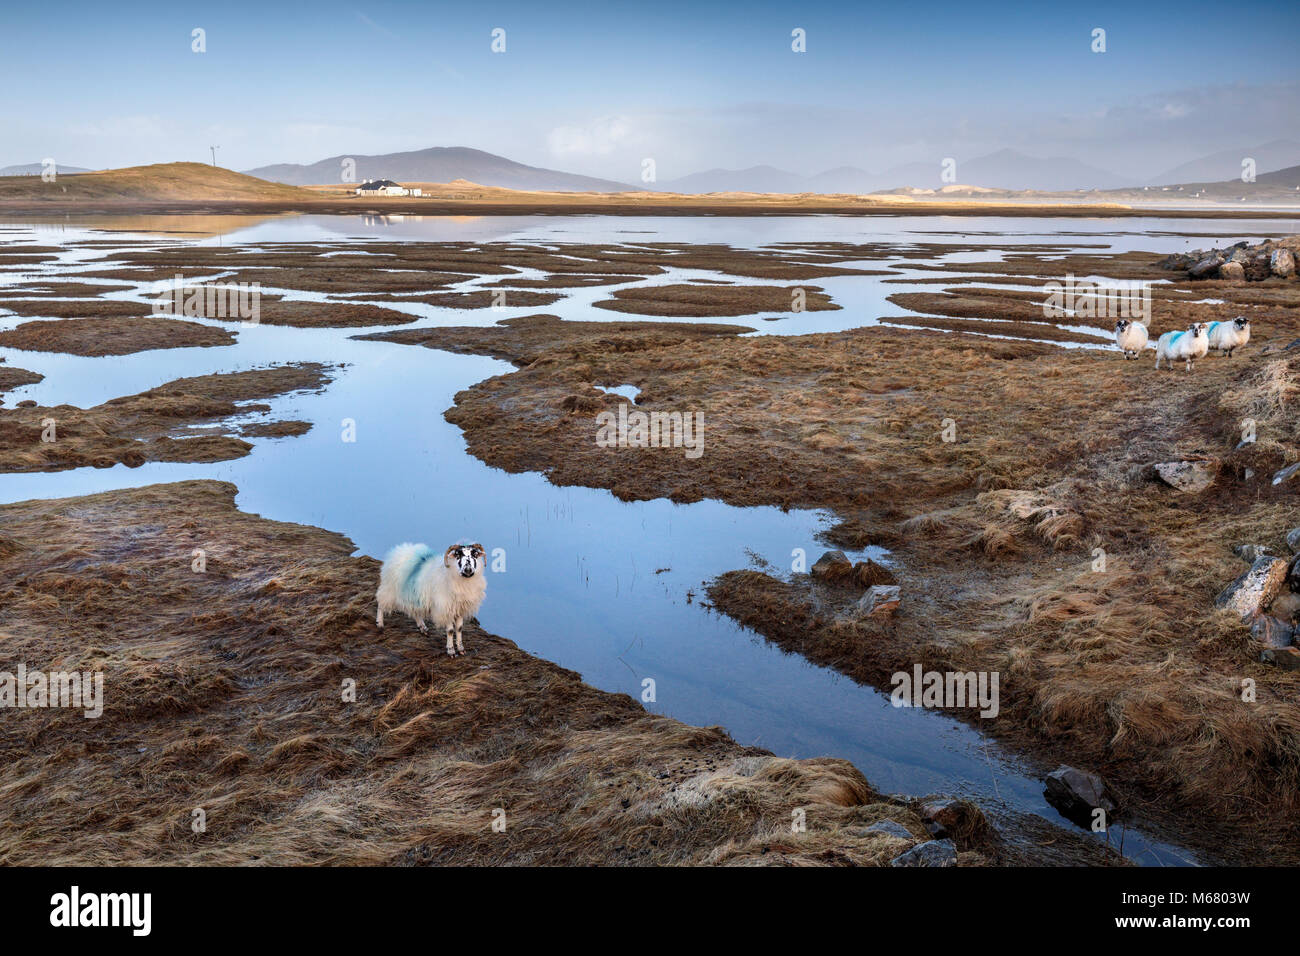 A sheep watching the photographer at Seilebost saltings towards Luskentyre, Isle of Harris, Western Isles, Scotland Stock Photo